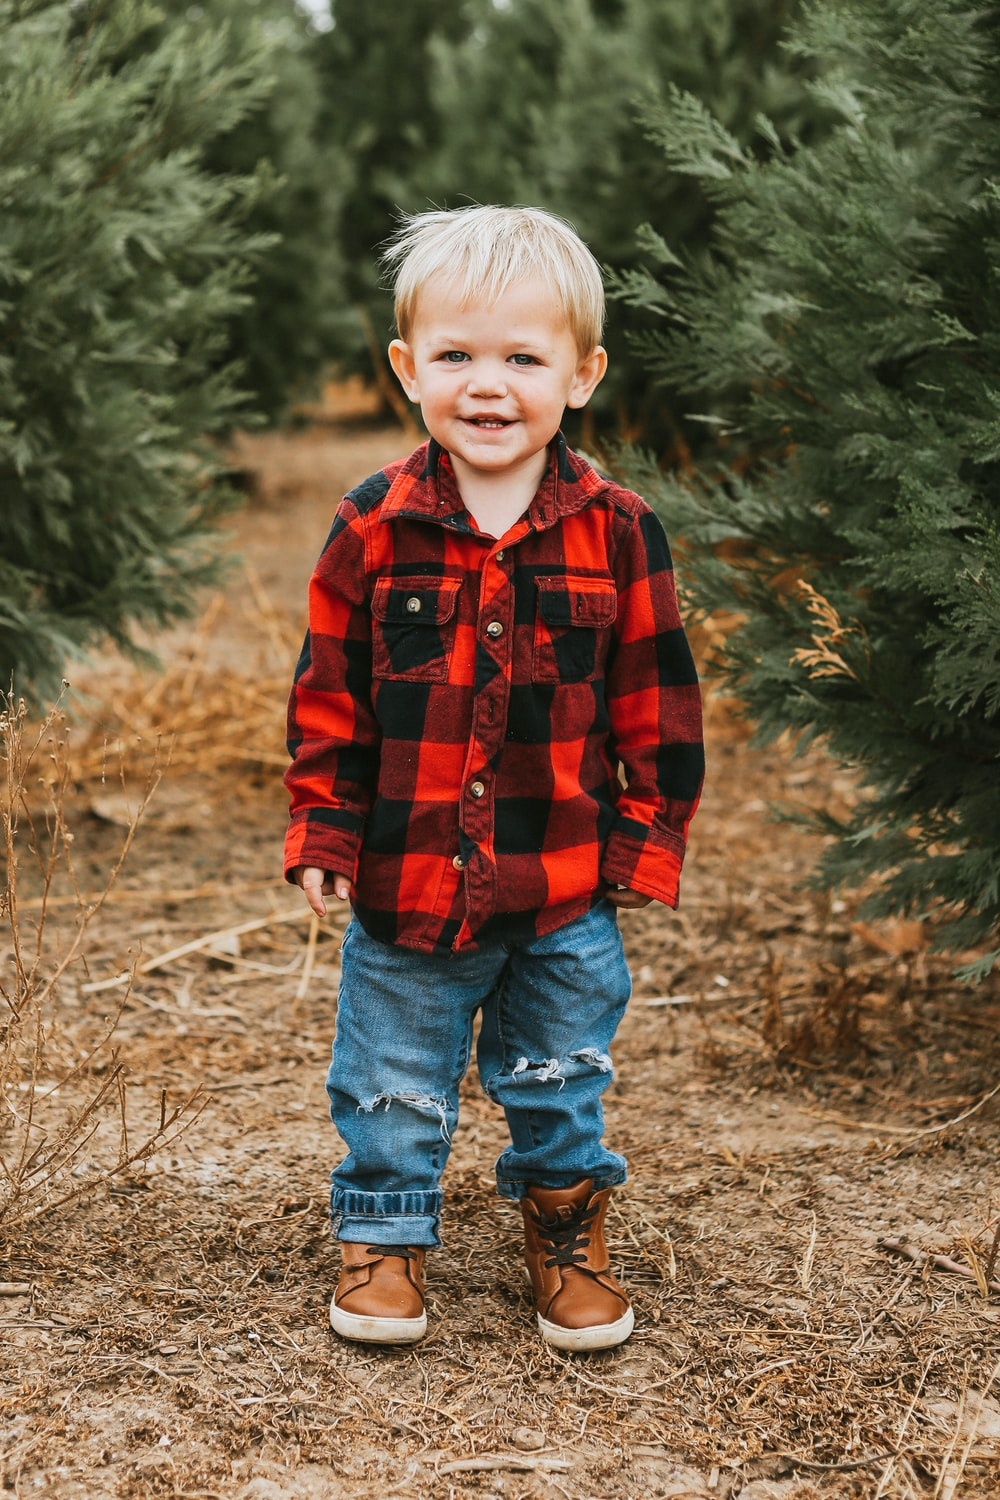 boy in red and black plaid dress shirt standing on brown grass field during daytime